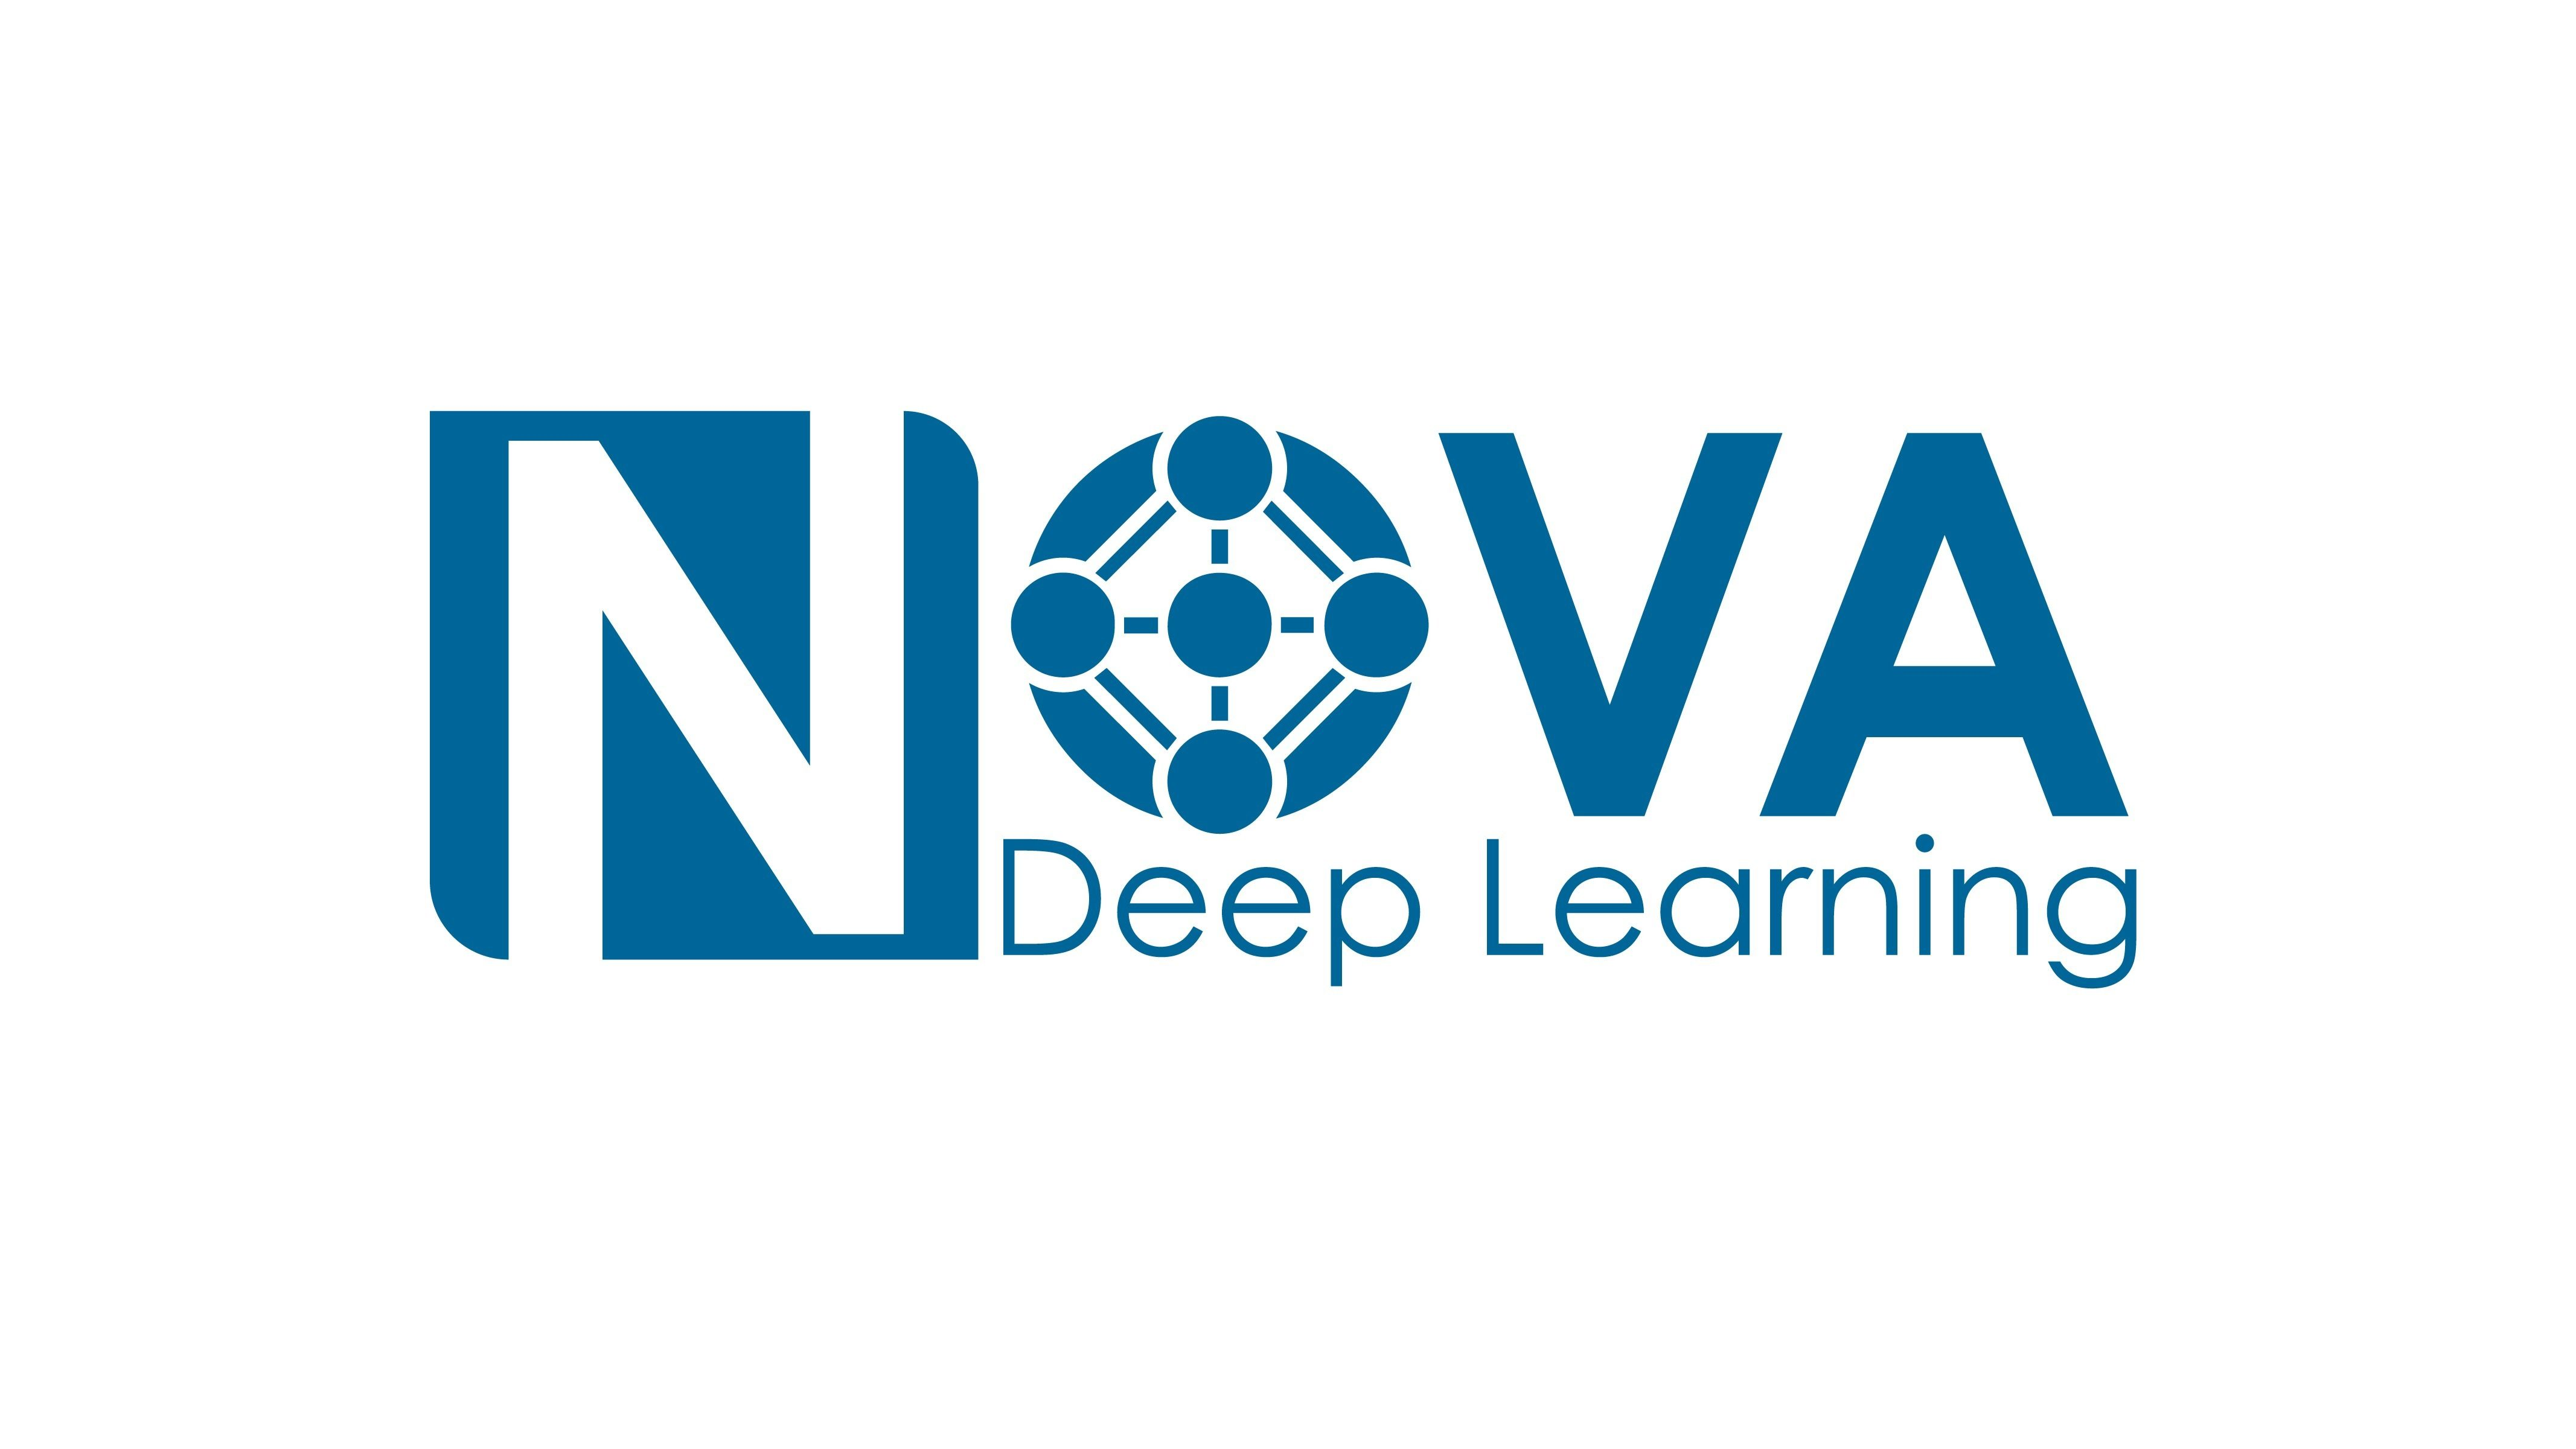 NOVA Deep Learning